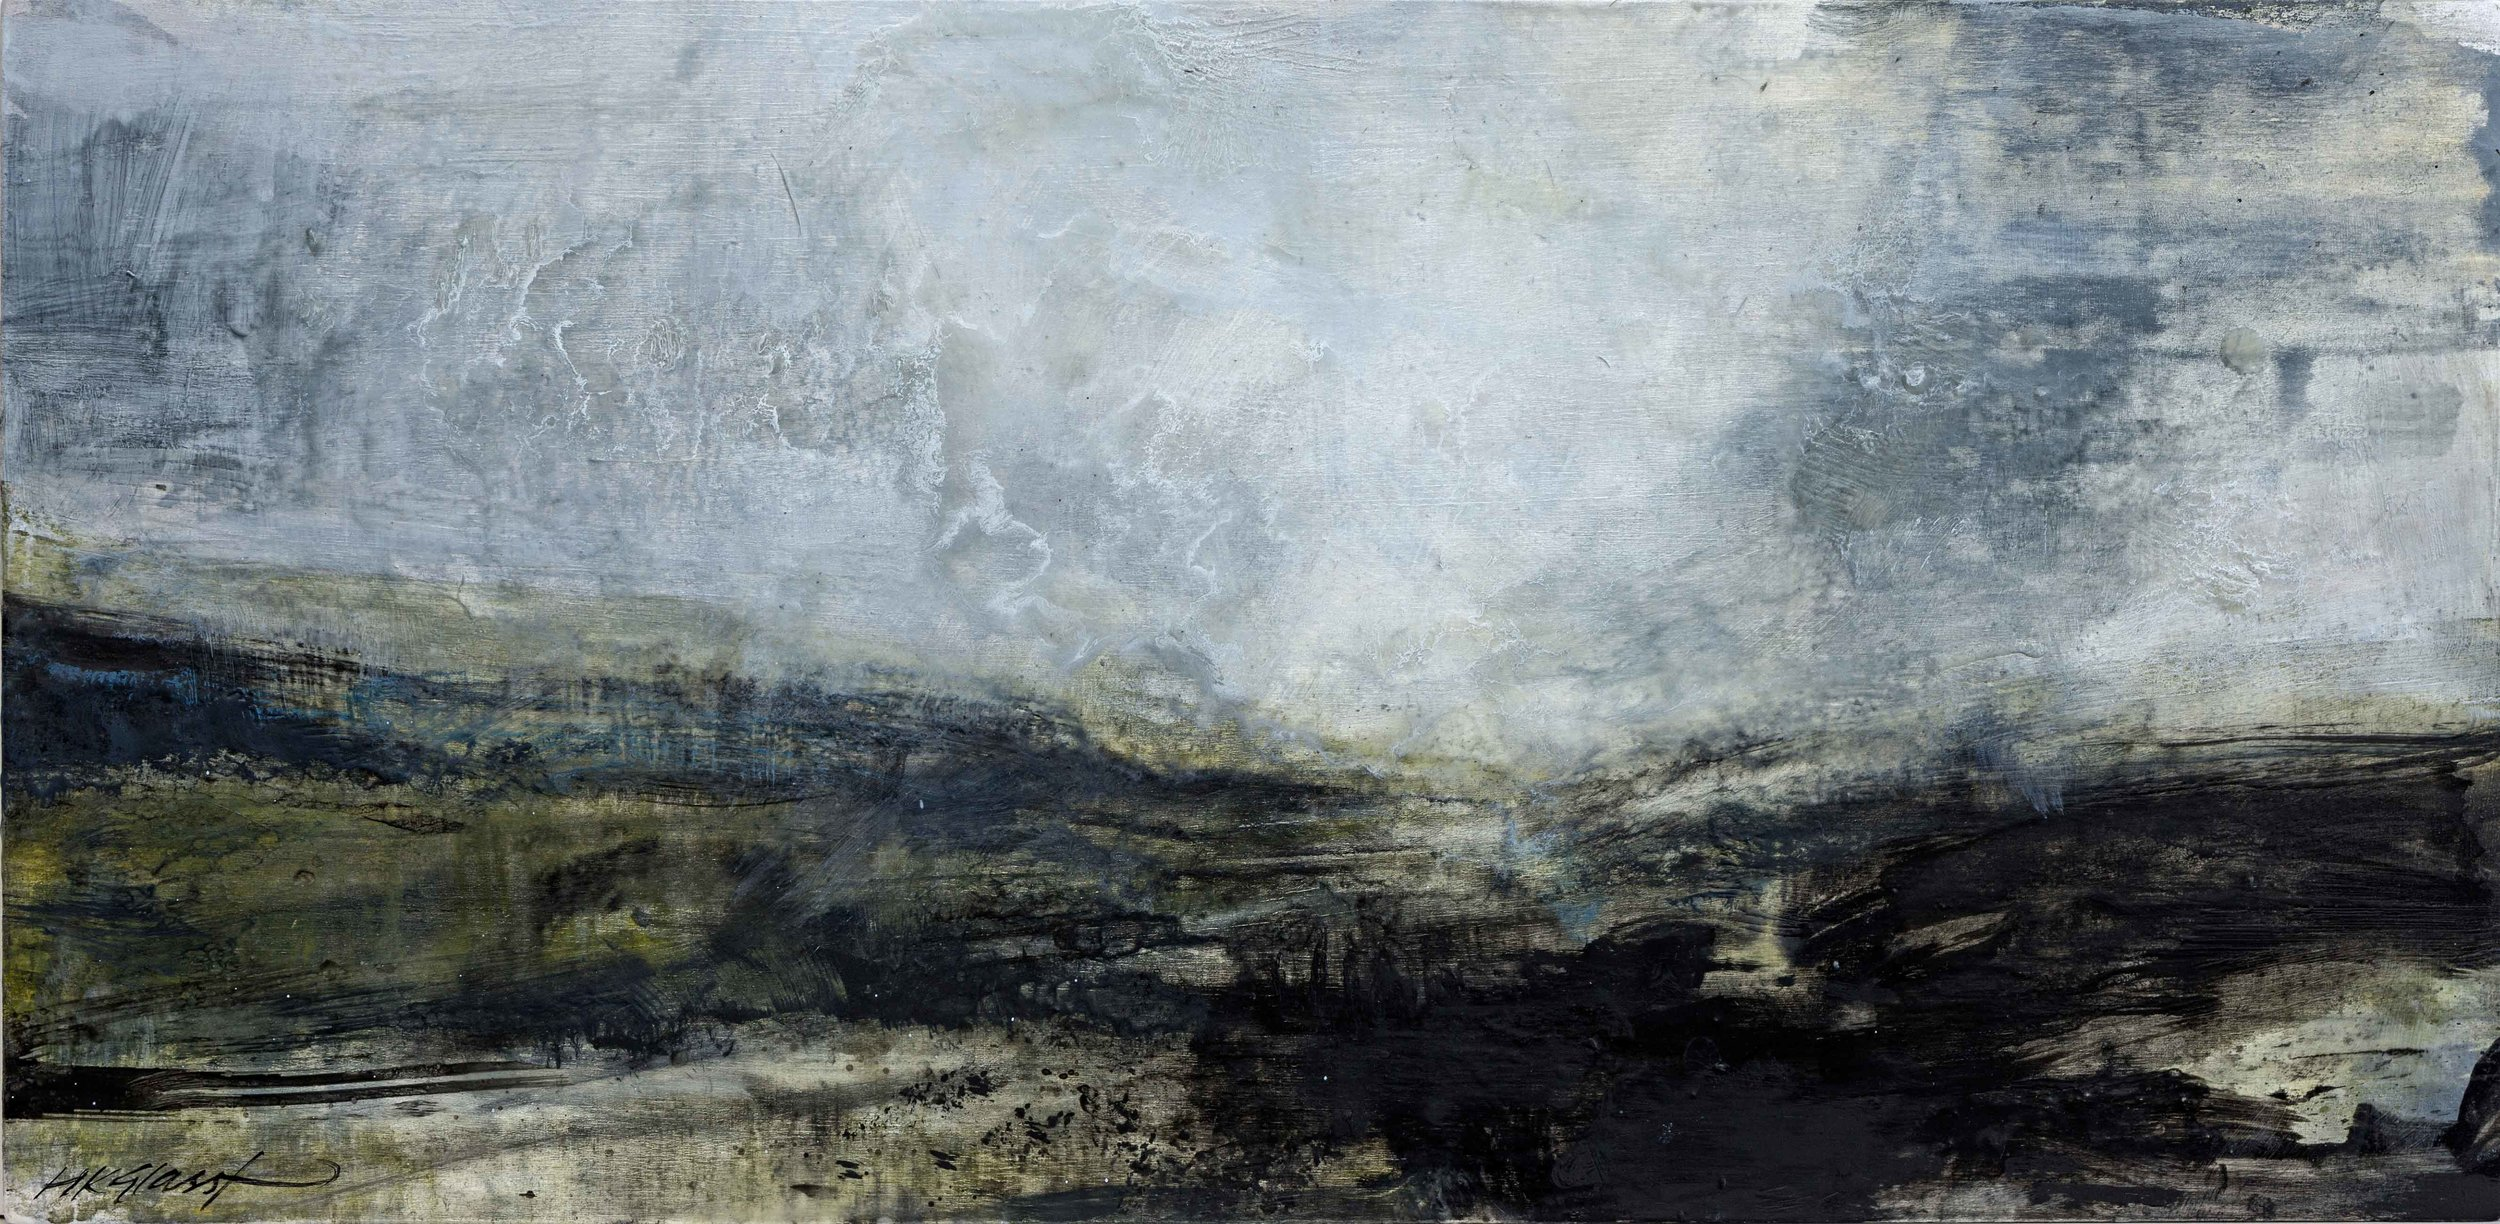 Moor • Oil and Encaustic on Board • 30x 60cm • 2019 • Sold